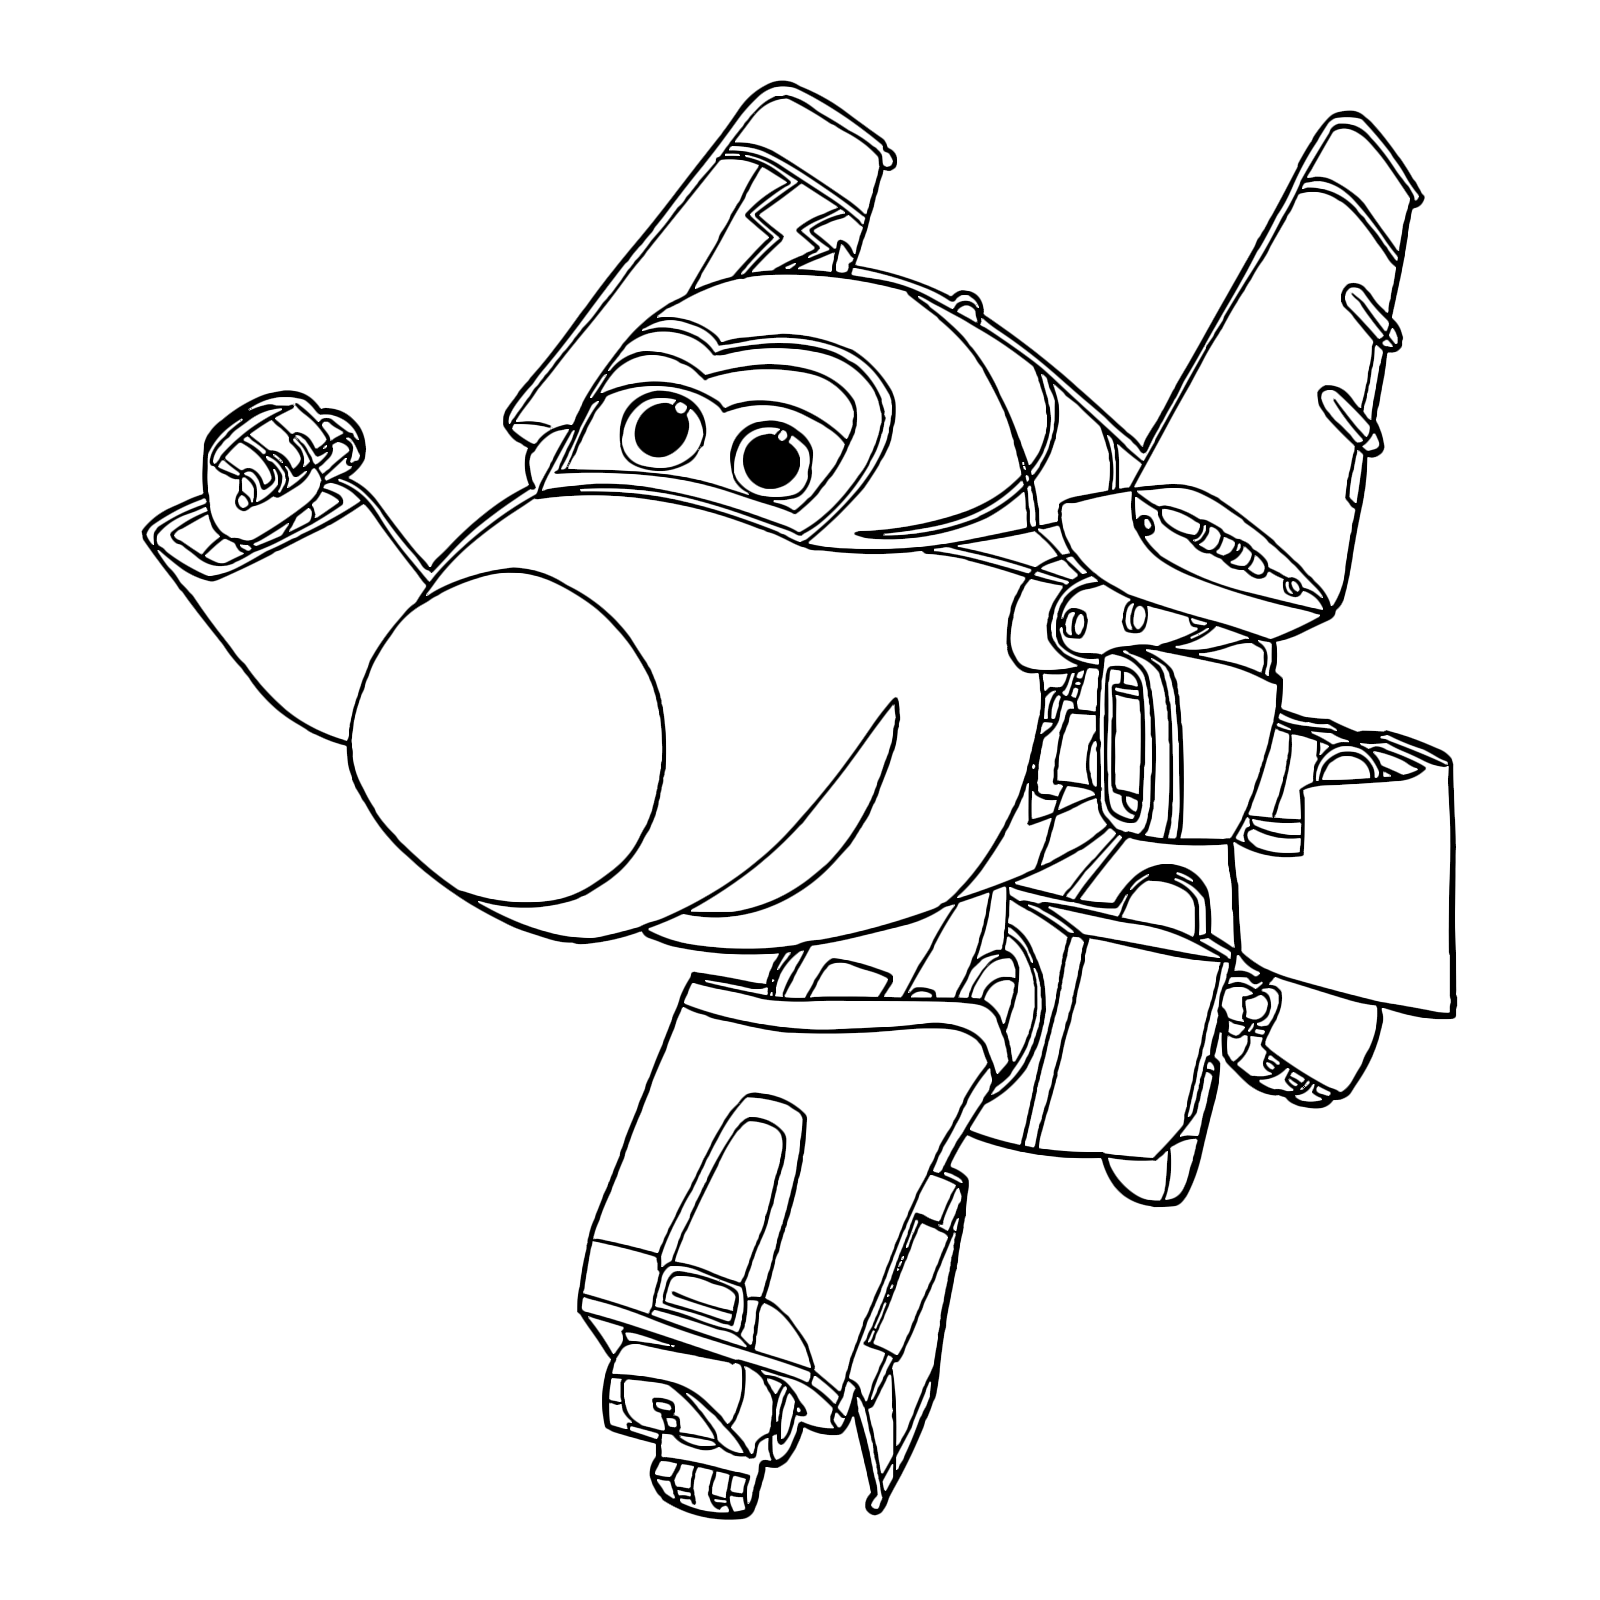 jett of the wings salutes coloring pages